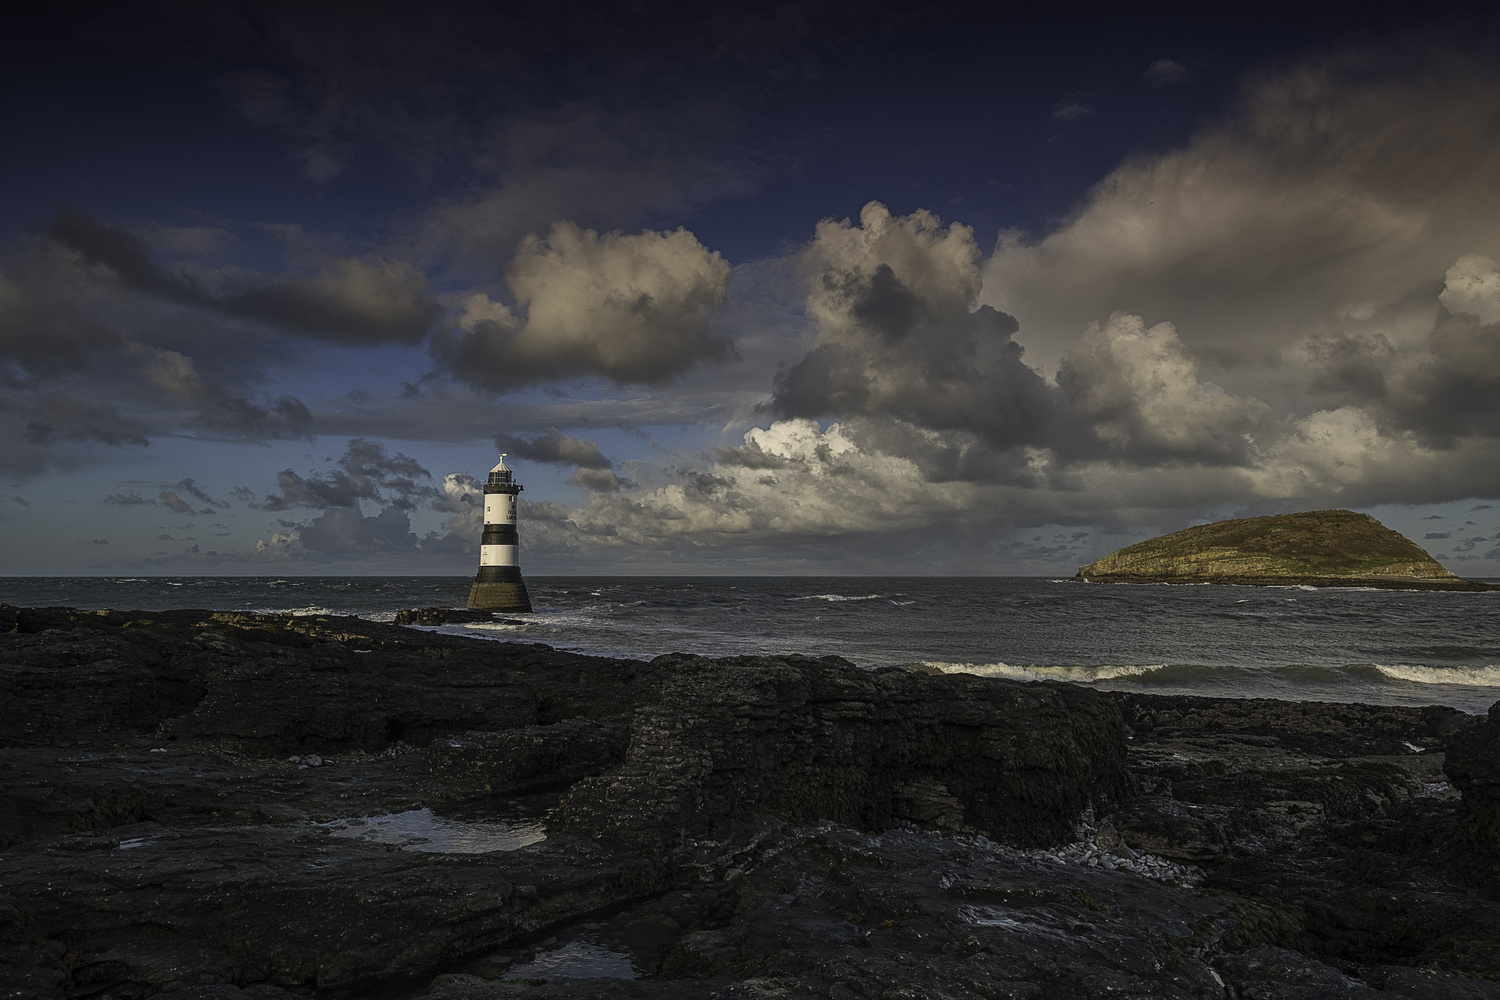 Penmon Lighthouse by Alison Bailey